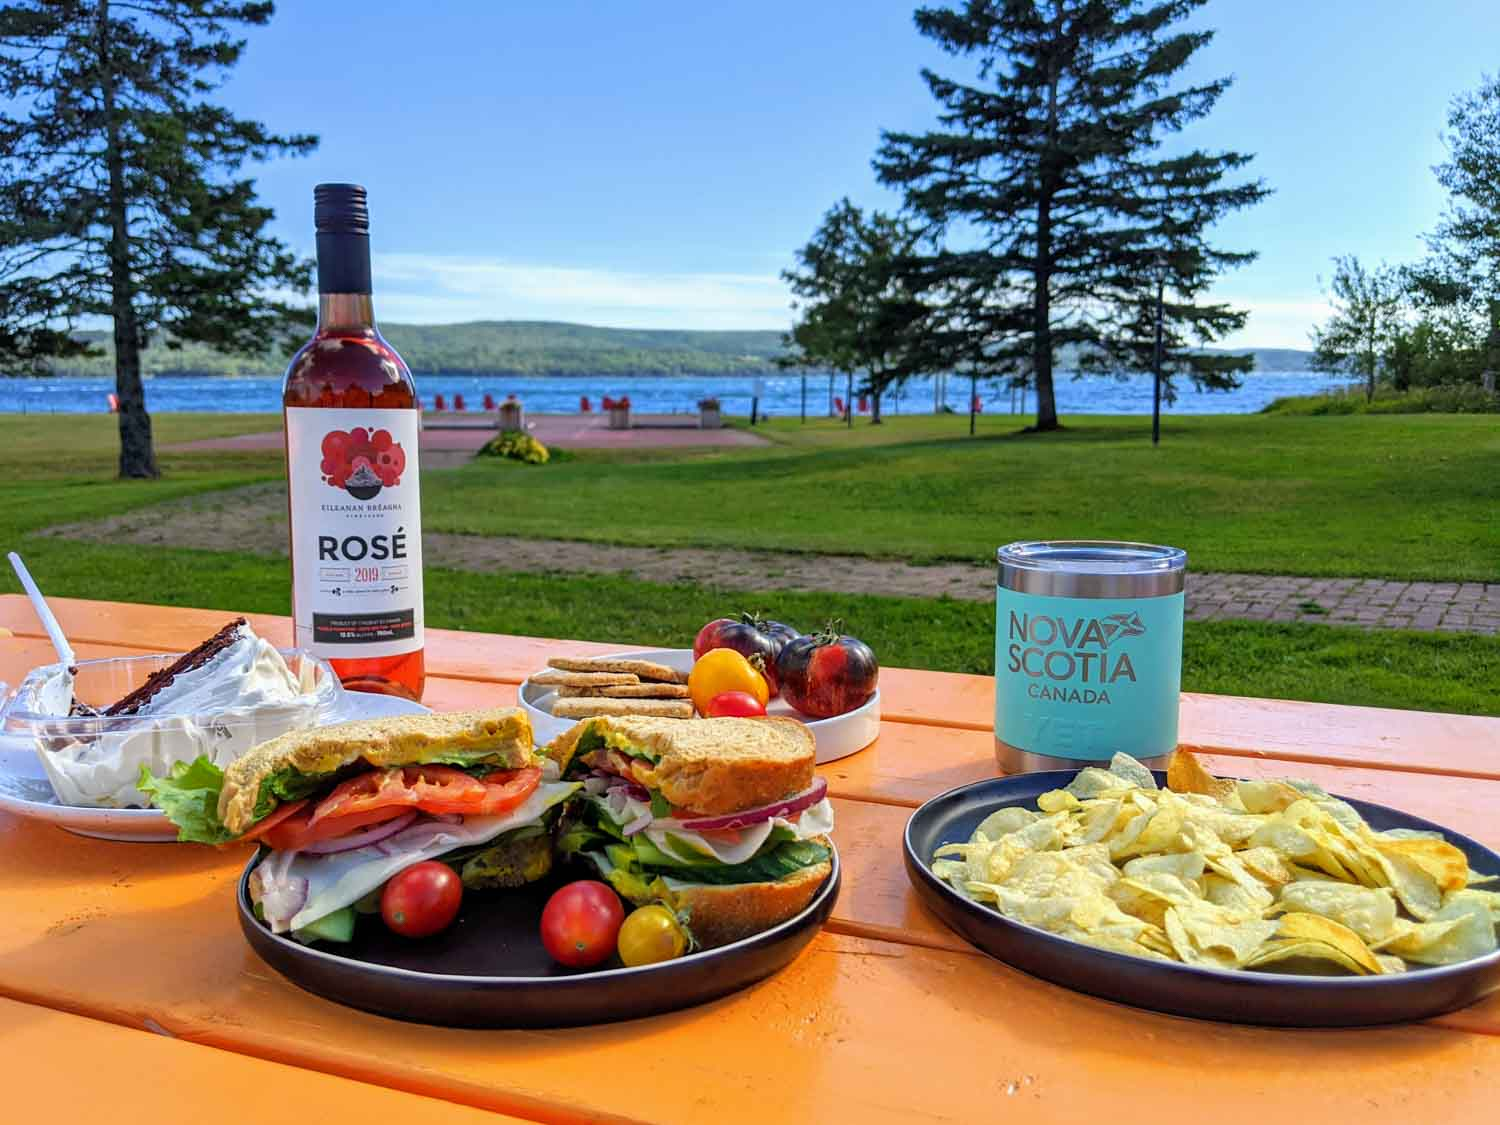 Lunch on an orange picnic table at Inverary resort in Baddeck Nova Scotia